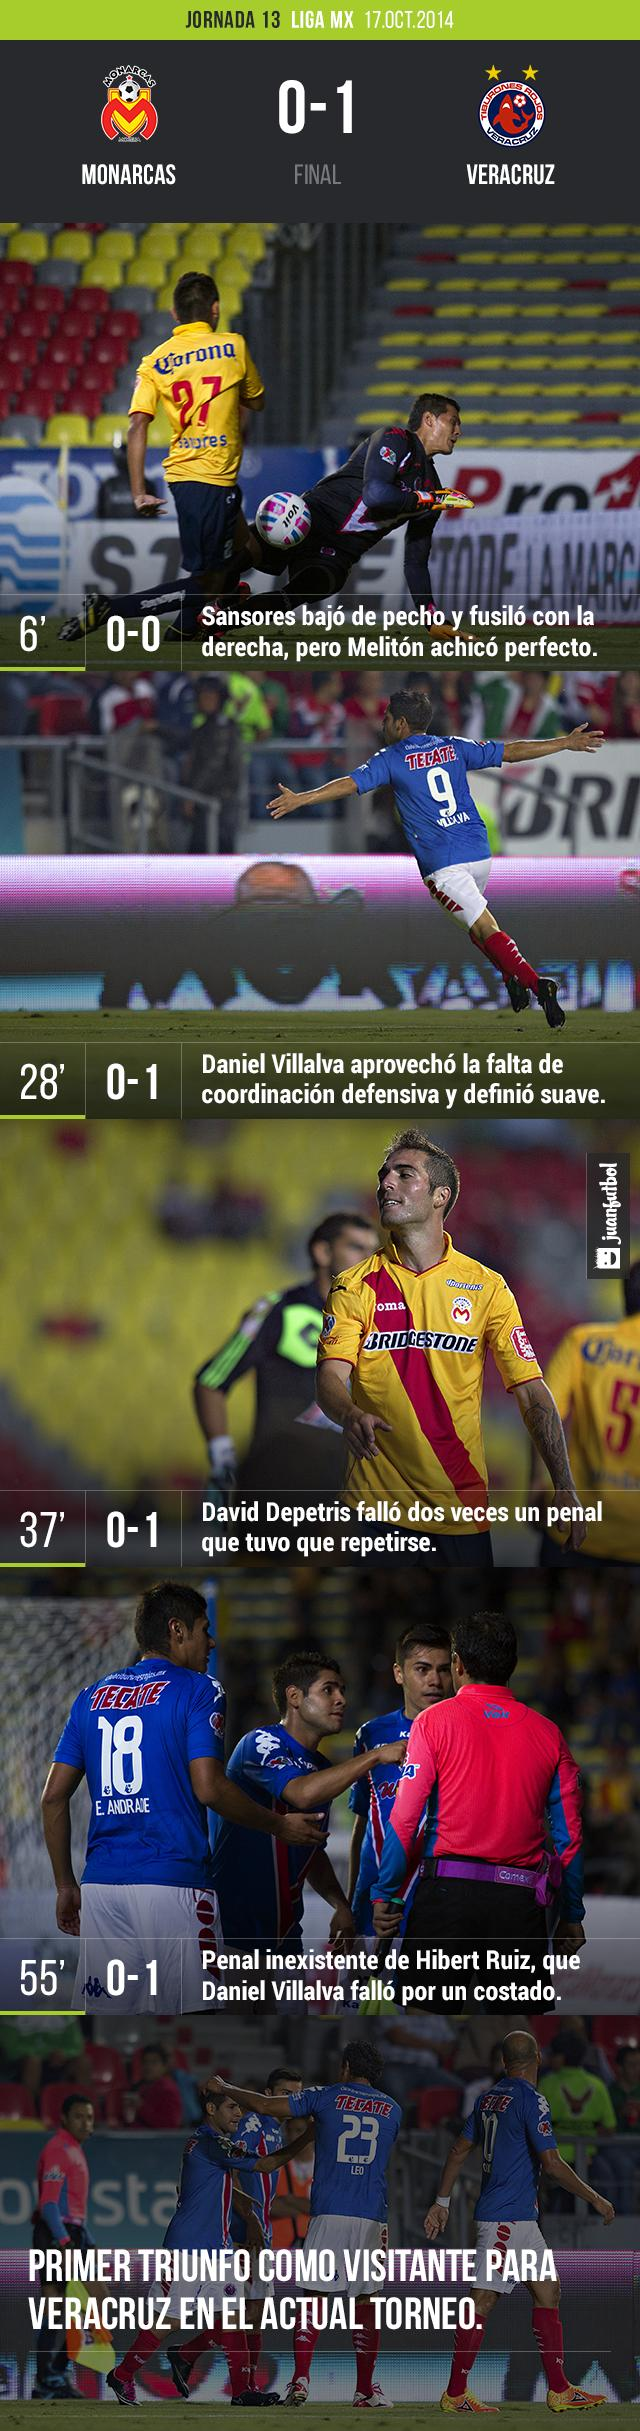 Monarcas vs. Veracruz